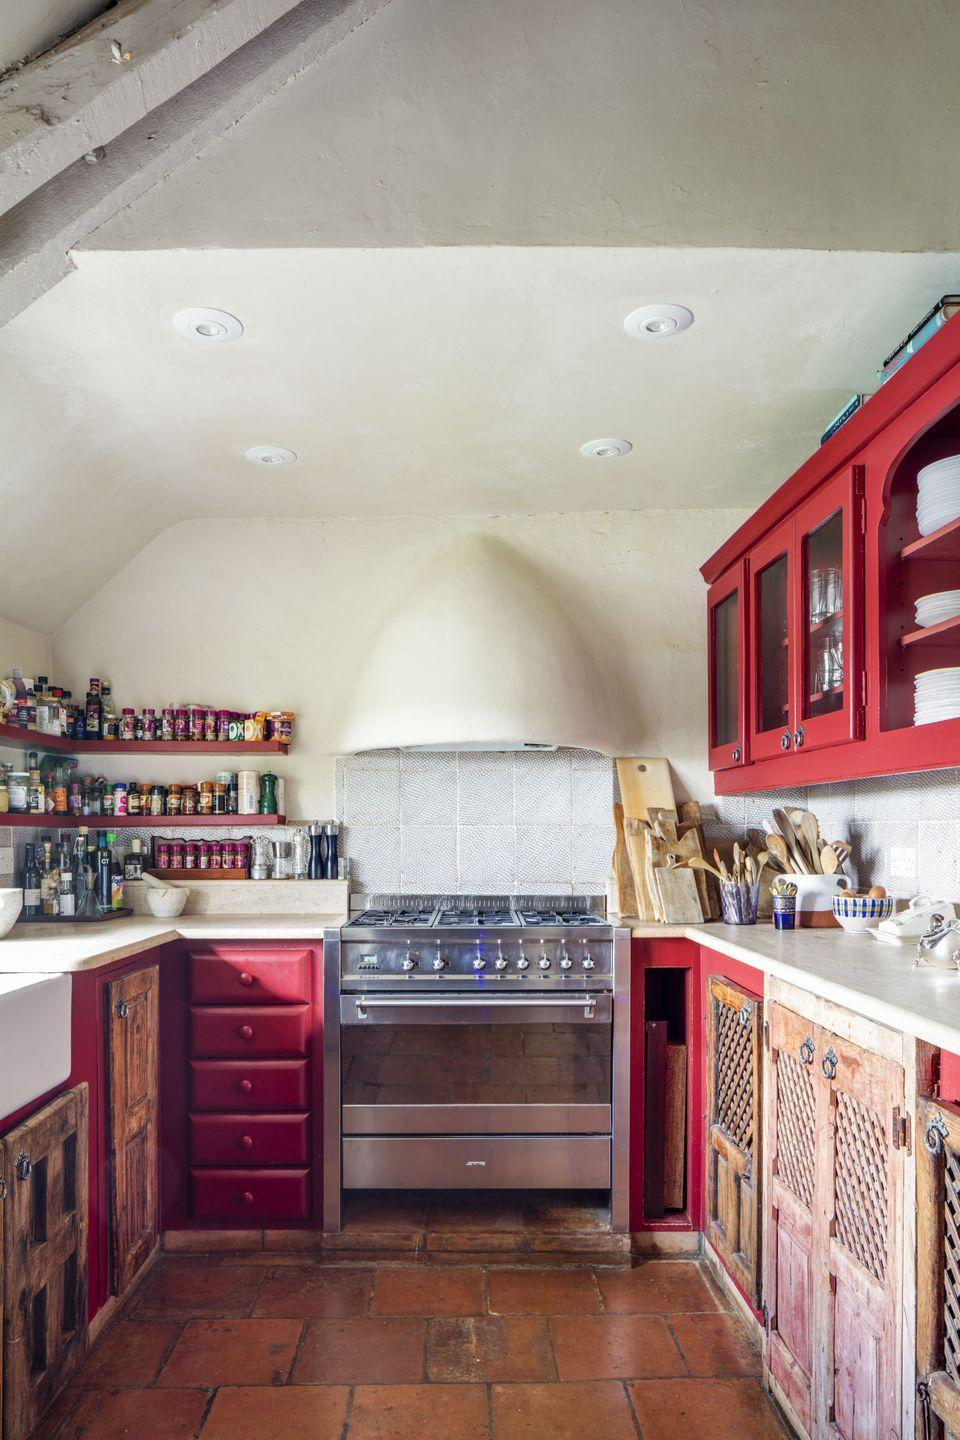 """<p>""""Our kitchen is partly made using reclaimed doors from a Spanish farmhouse we found, so we built some cupboards around them. We were able to restore the 16th century original terracotta pamments in many of the floors, they are incredibly uneven, and I love their imperfection.""""</p>"""